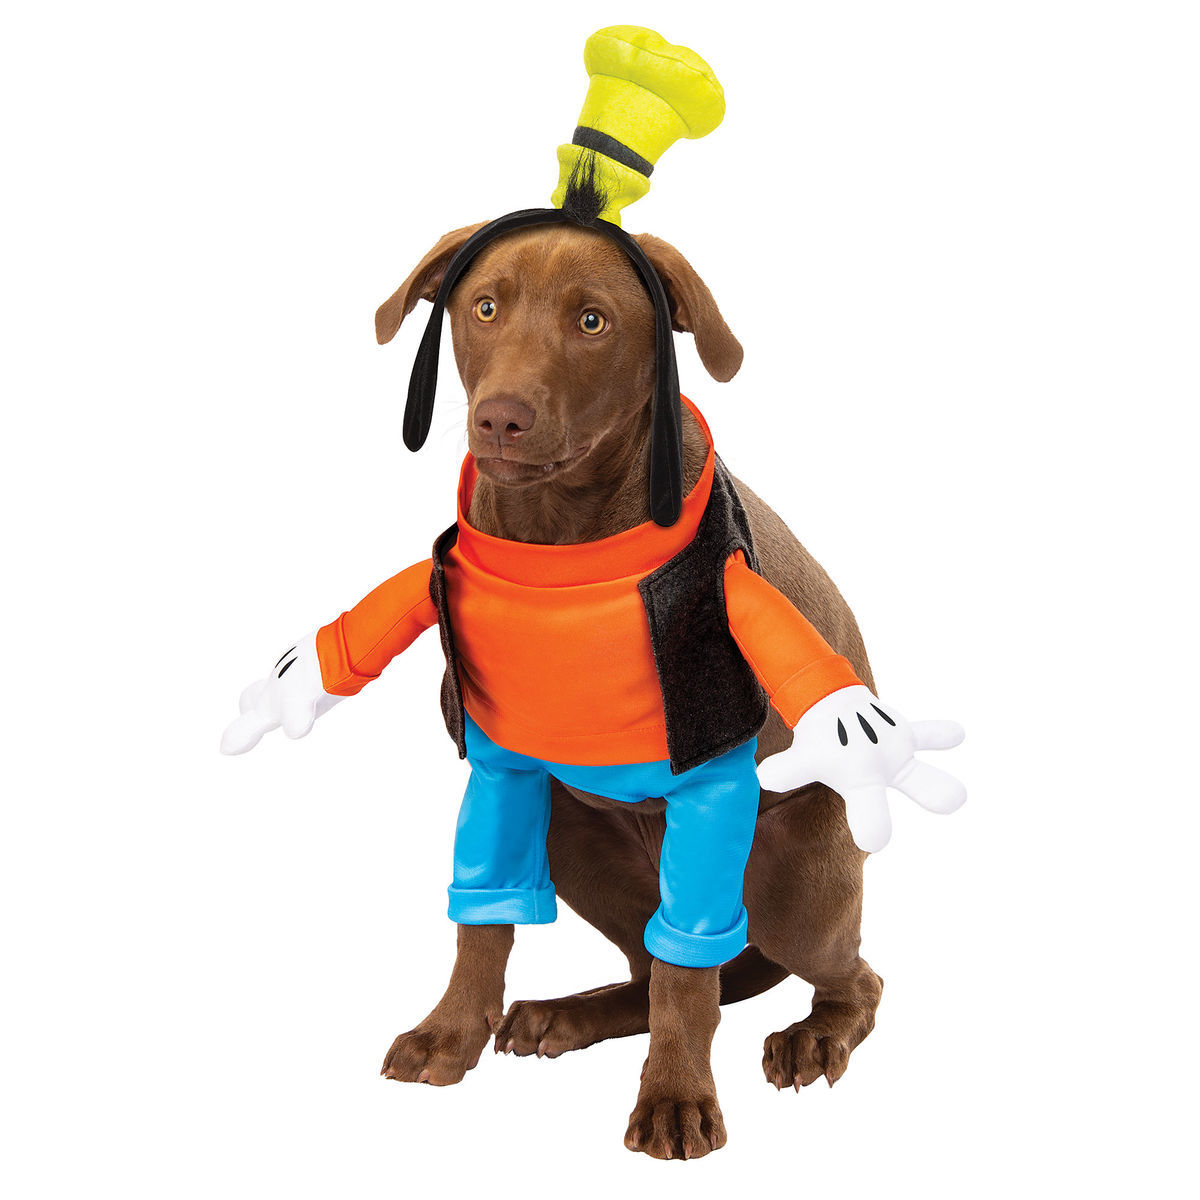 Pet Costumes With Disney Style! 6